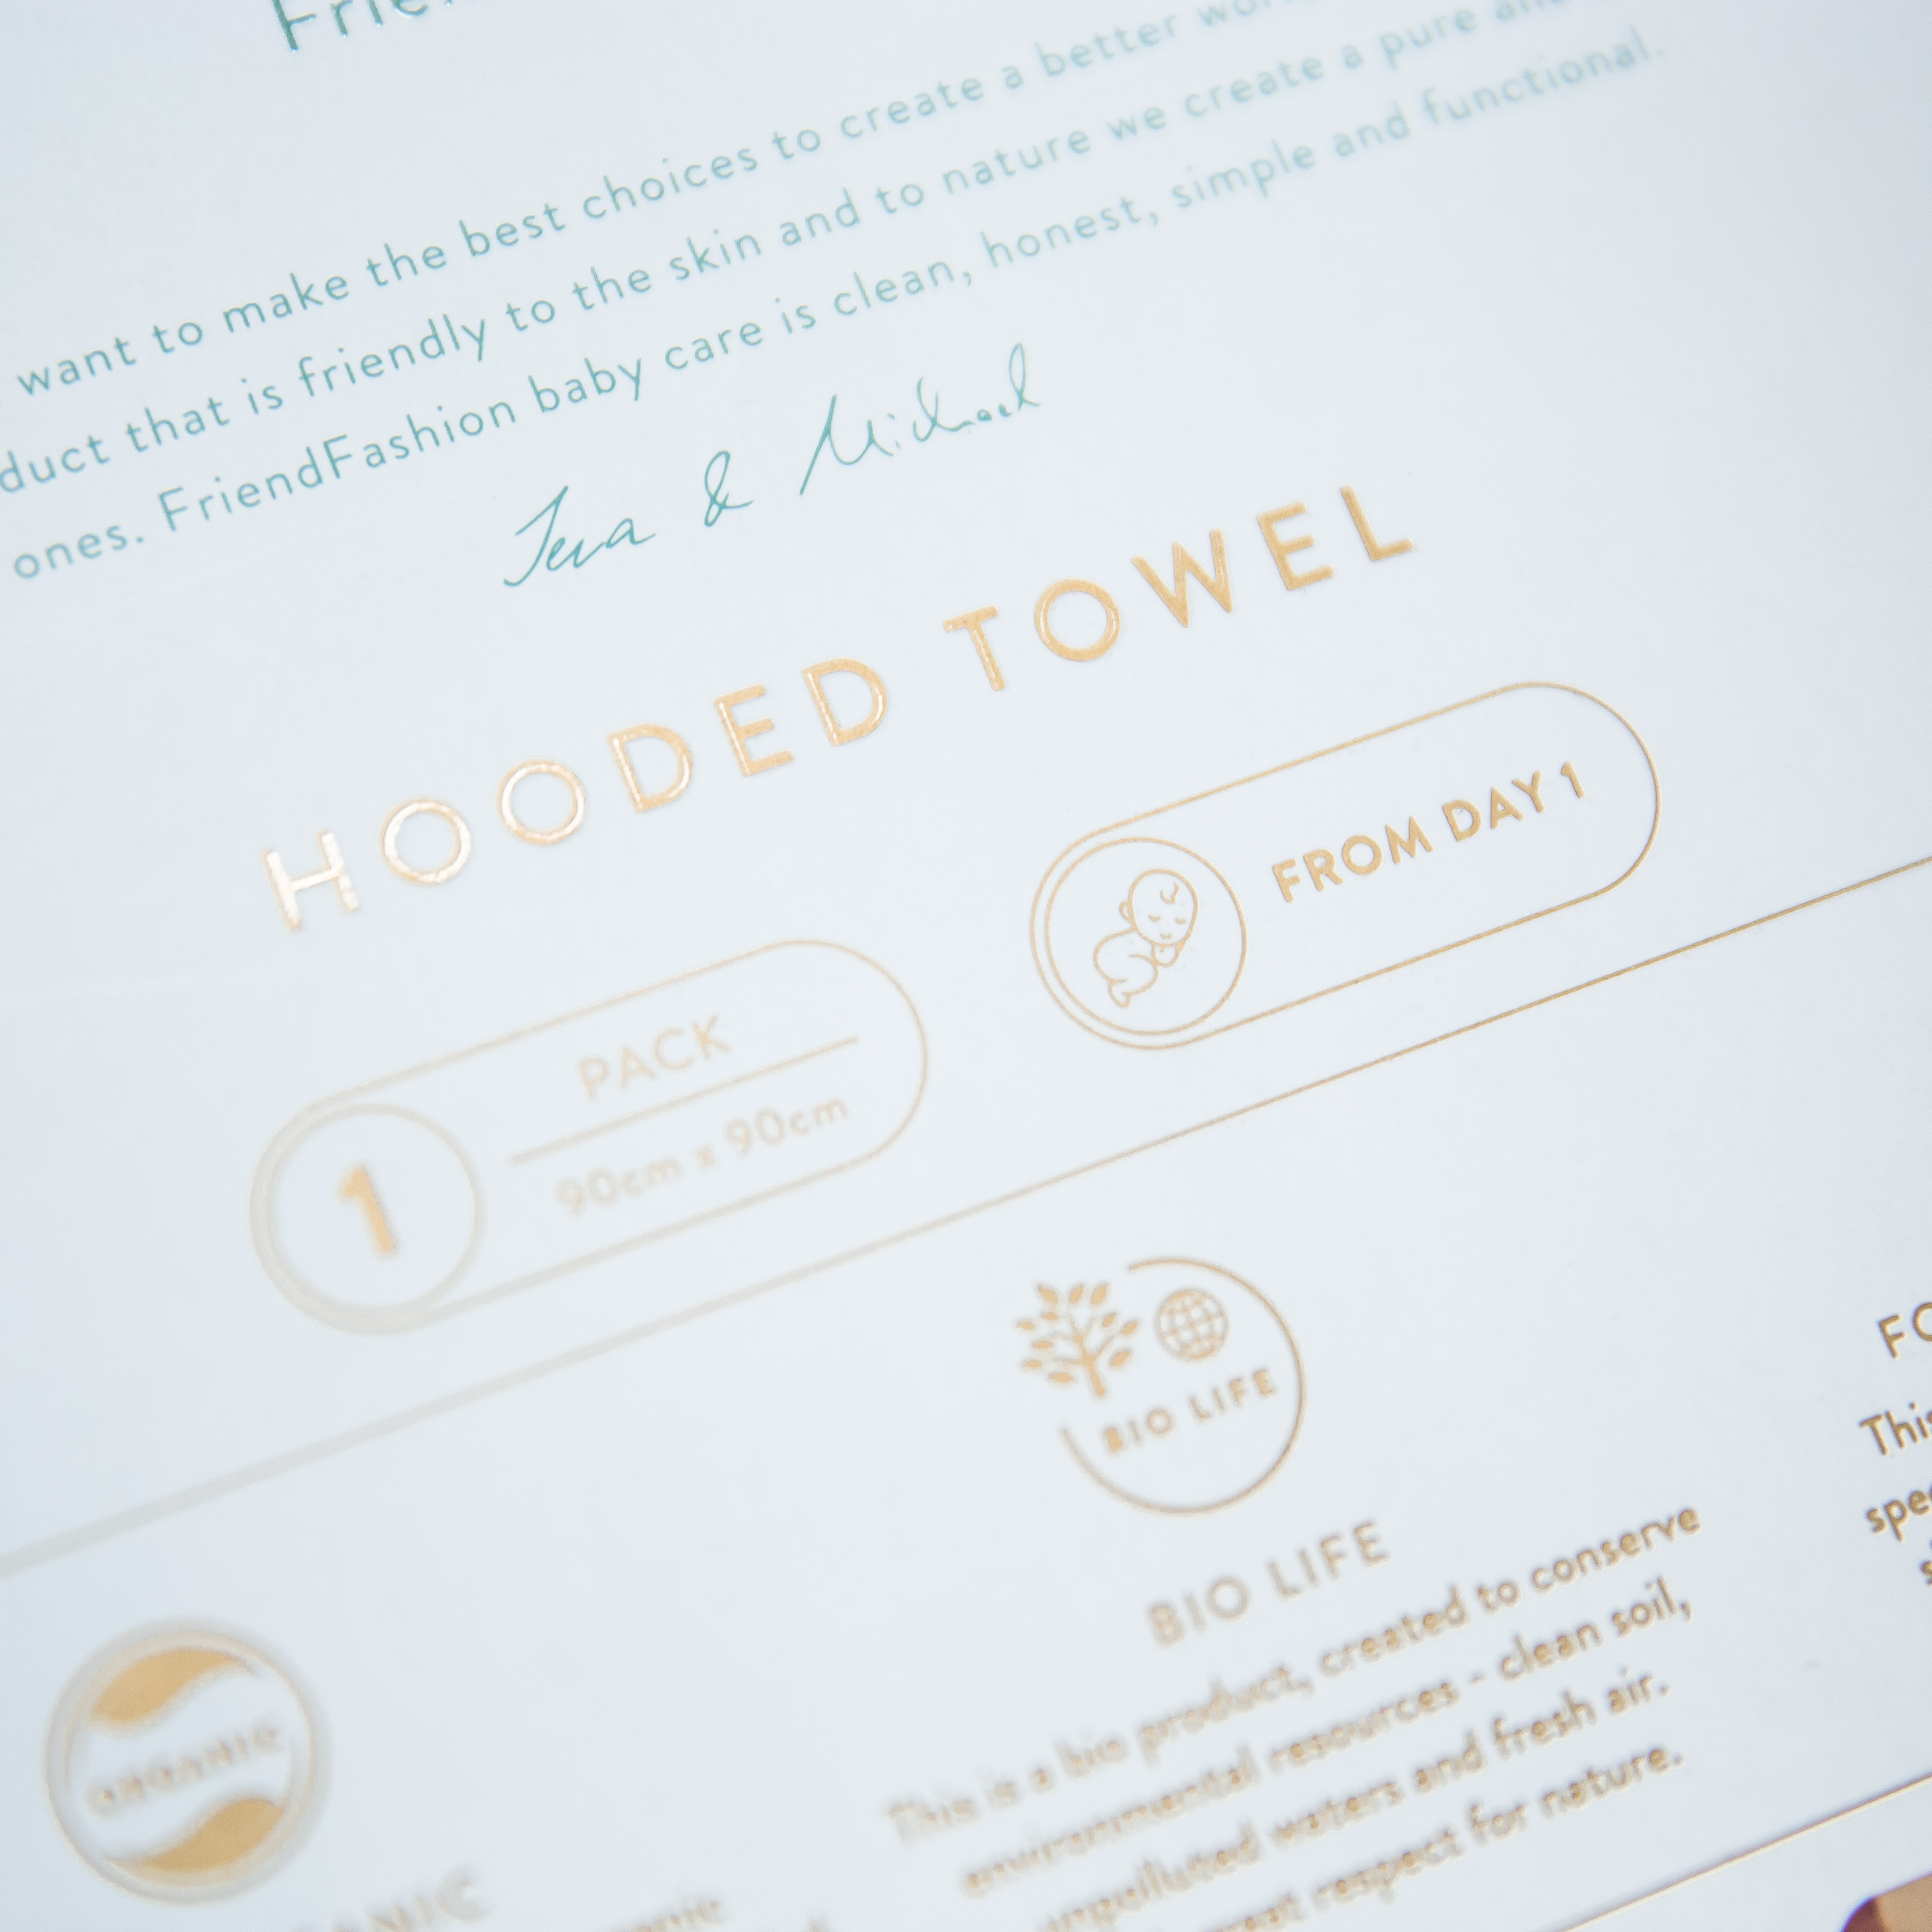 Perfect gift: Baby hooded towel in a beautiful packaging